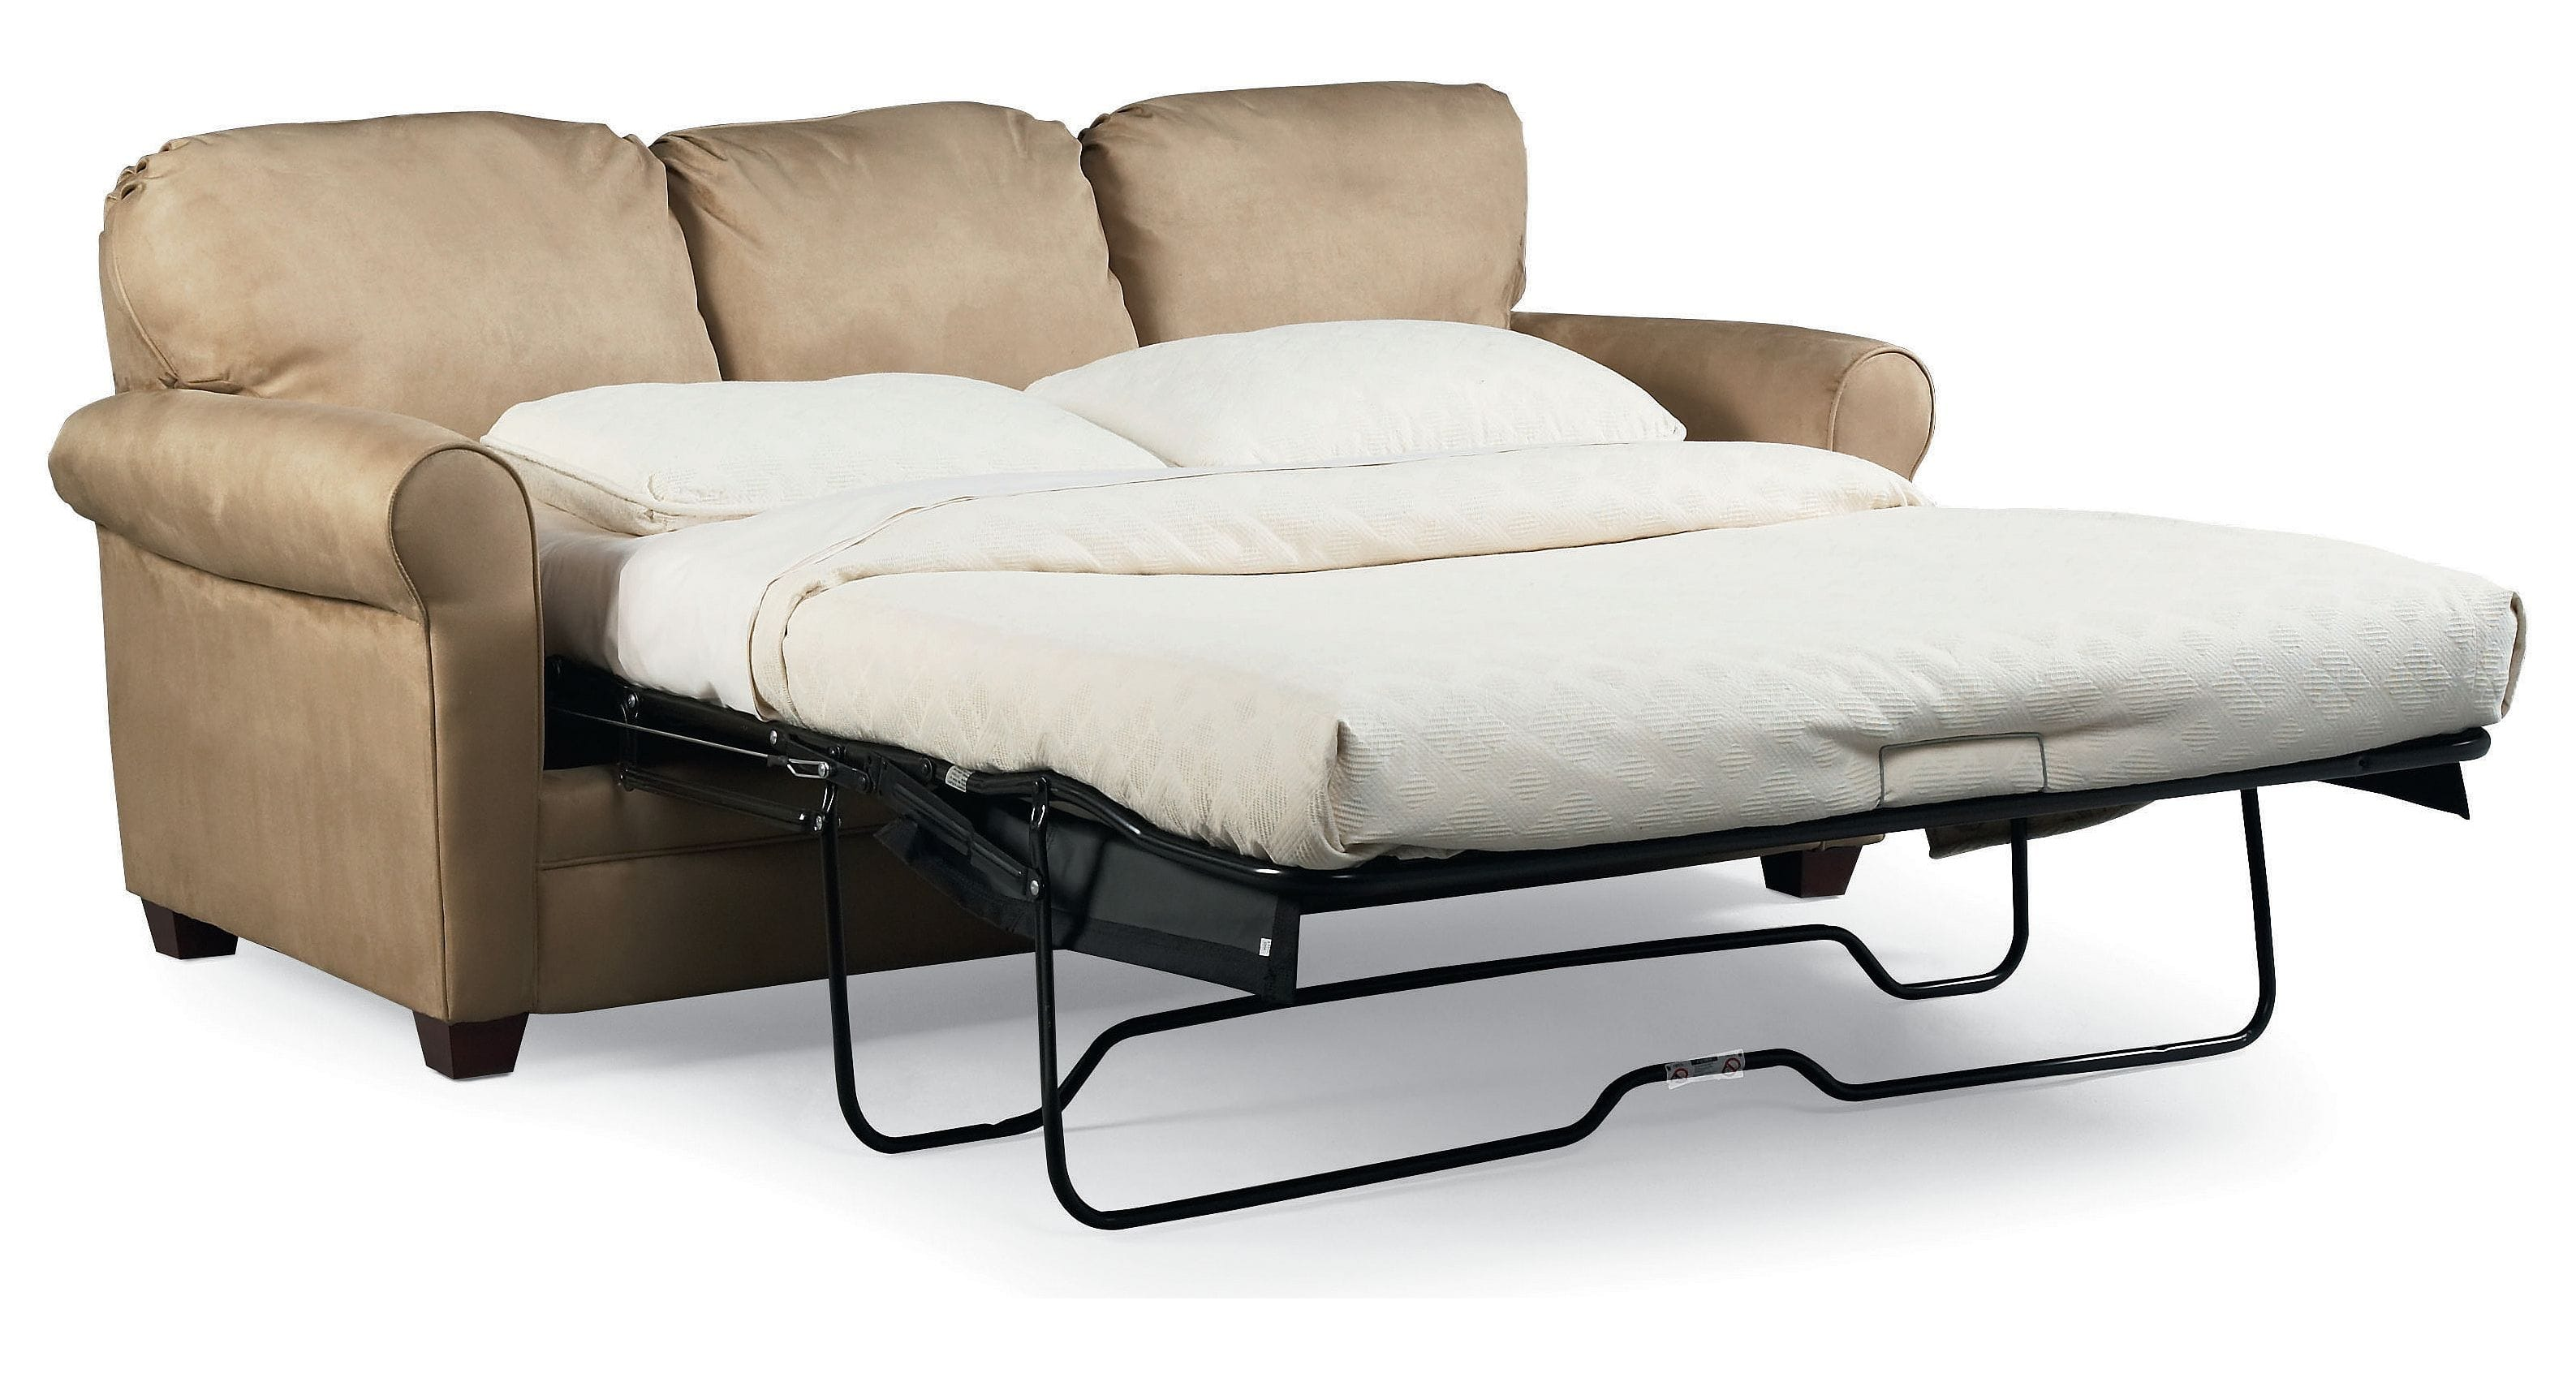 Queen Size Sleeper Sofa Style